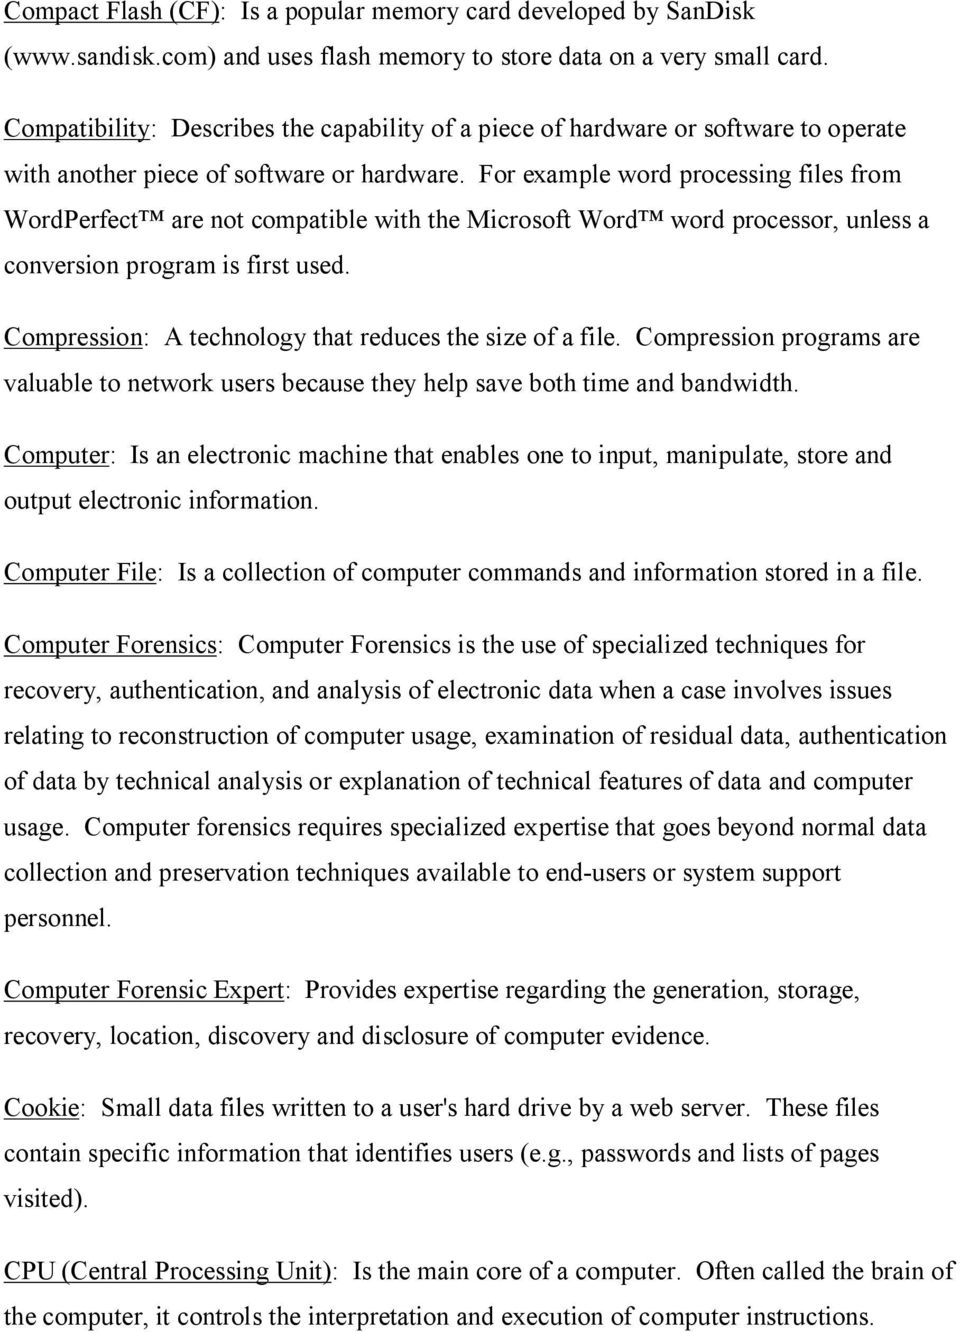 For example word processing files from WordPerfect are not compatible with the Microsoft Word word processor, unless a conversion program is first used.